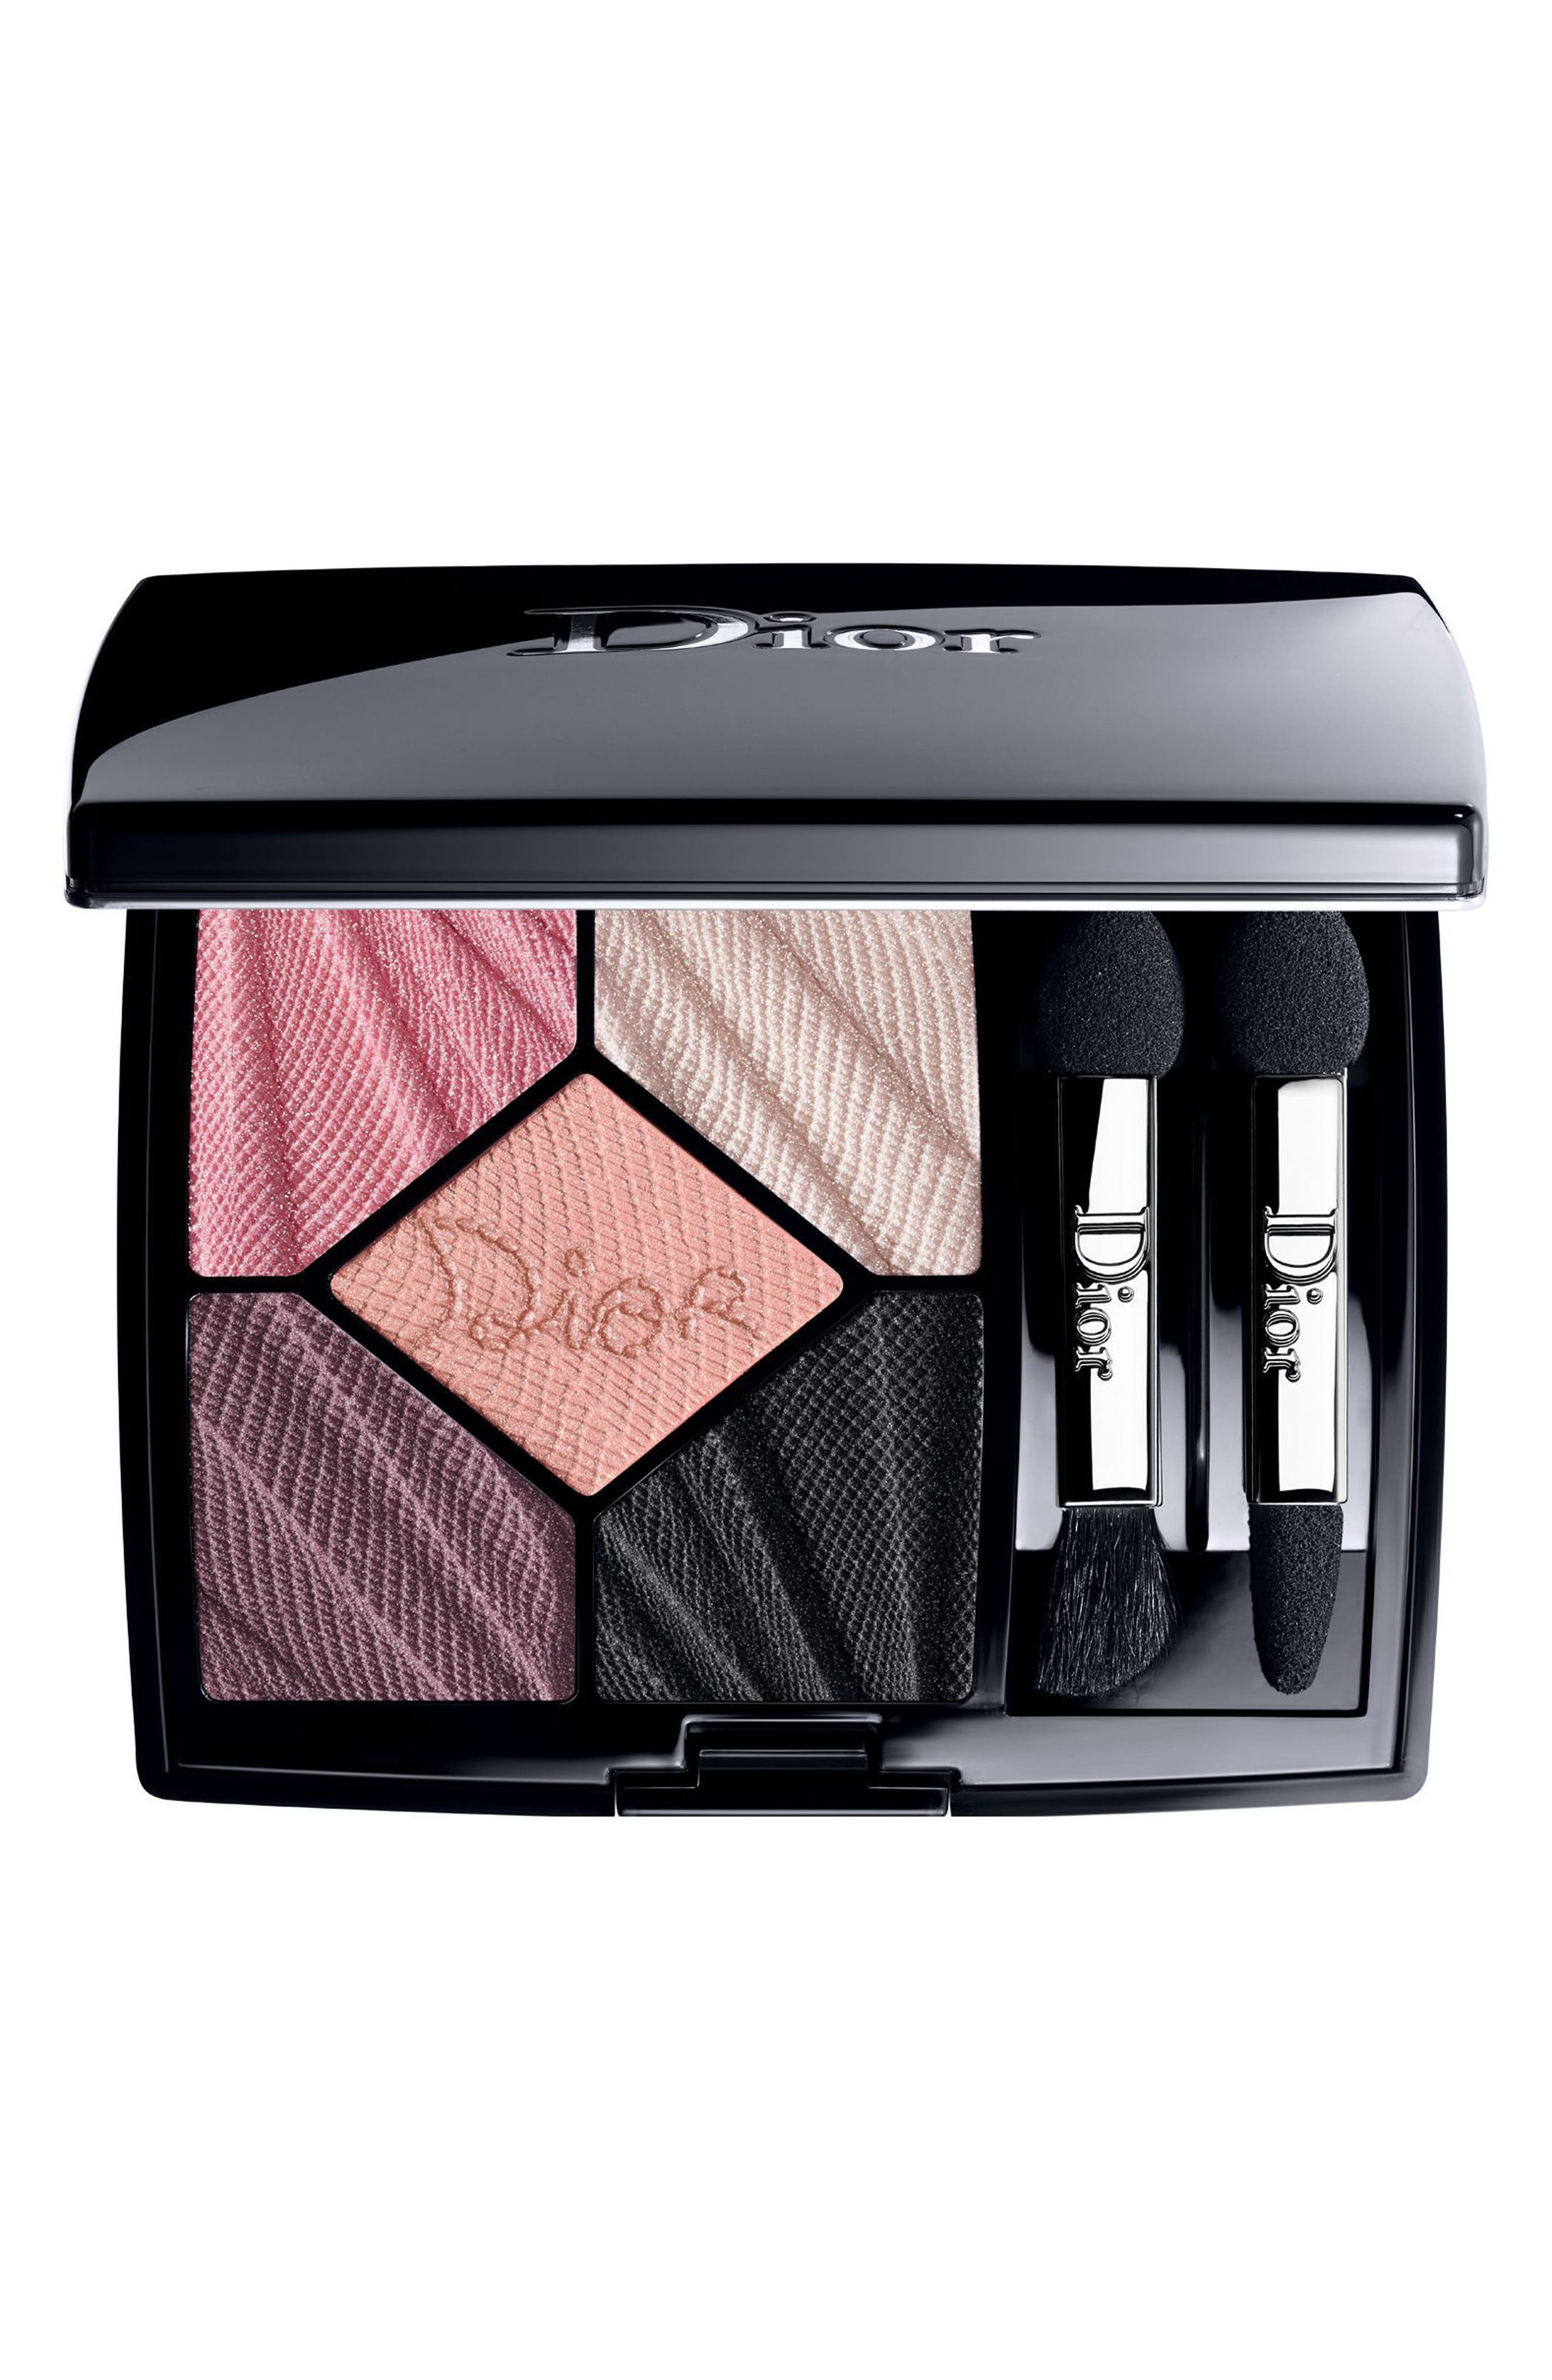 Dior 5 Couleurs Glow Addict Eyeshadow Palette